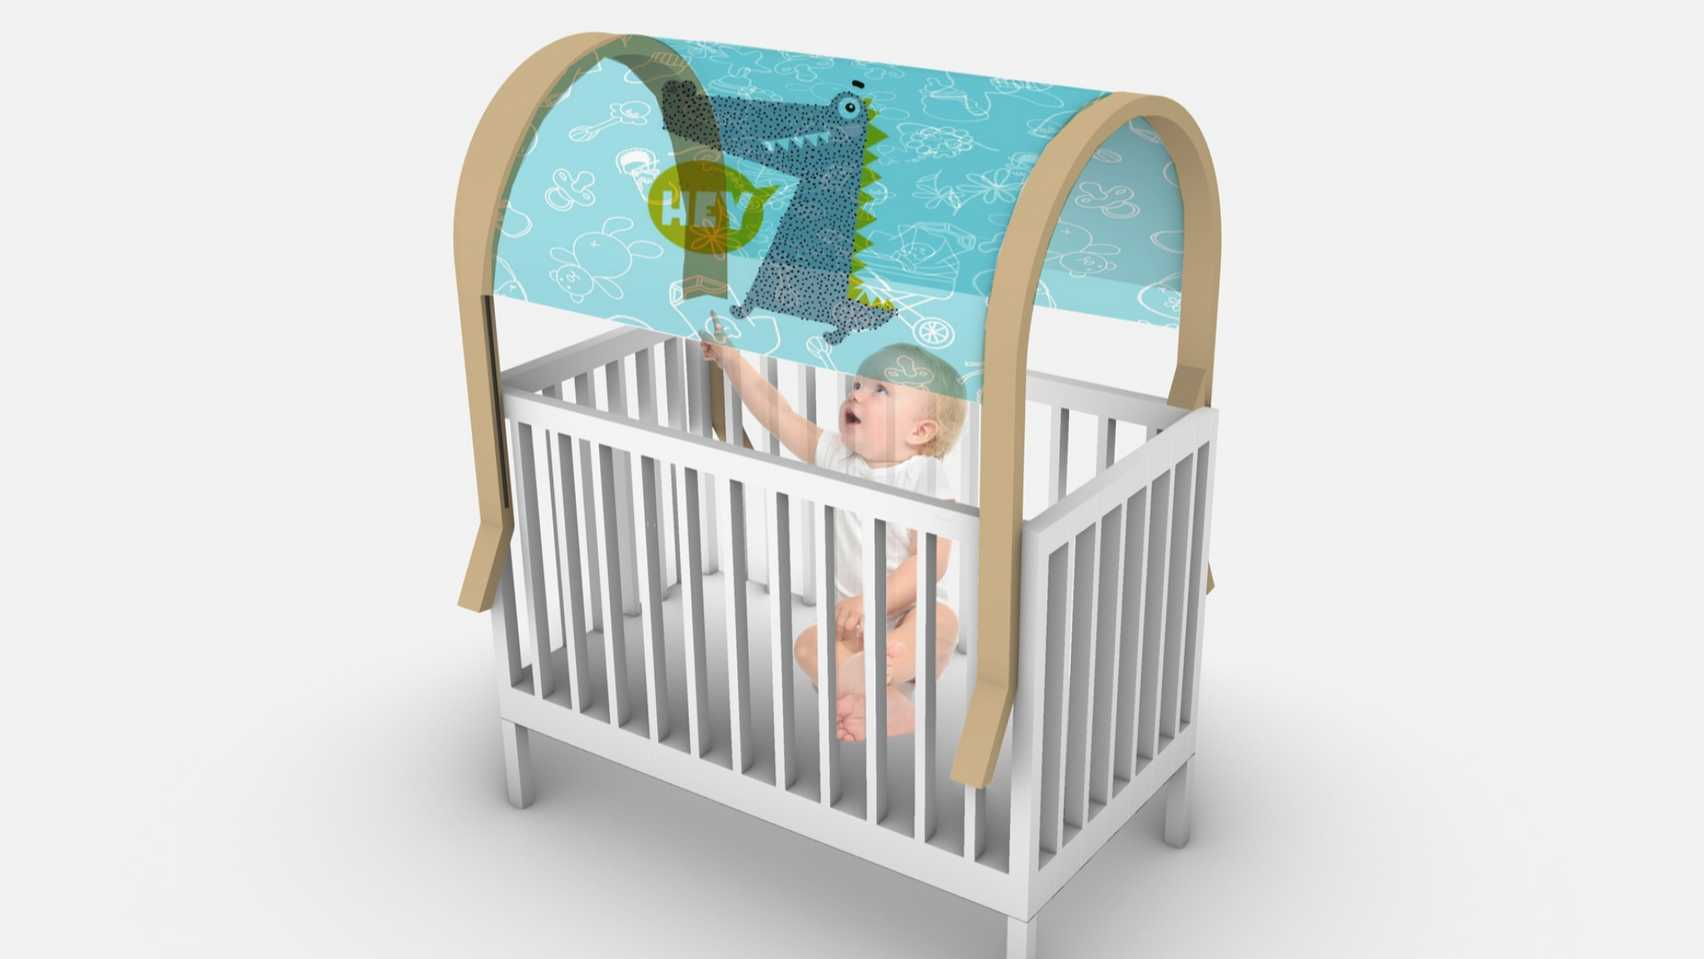 Wonderful World by Huan Khoo canopy for baby cribs on the Dezeen and LG Display OLED Go shortlist